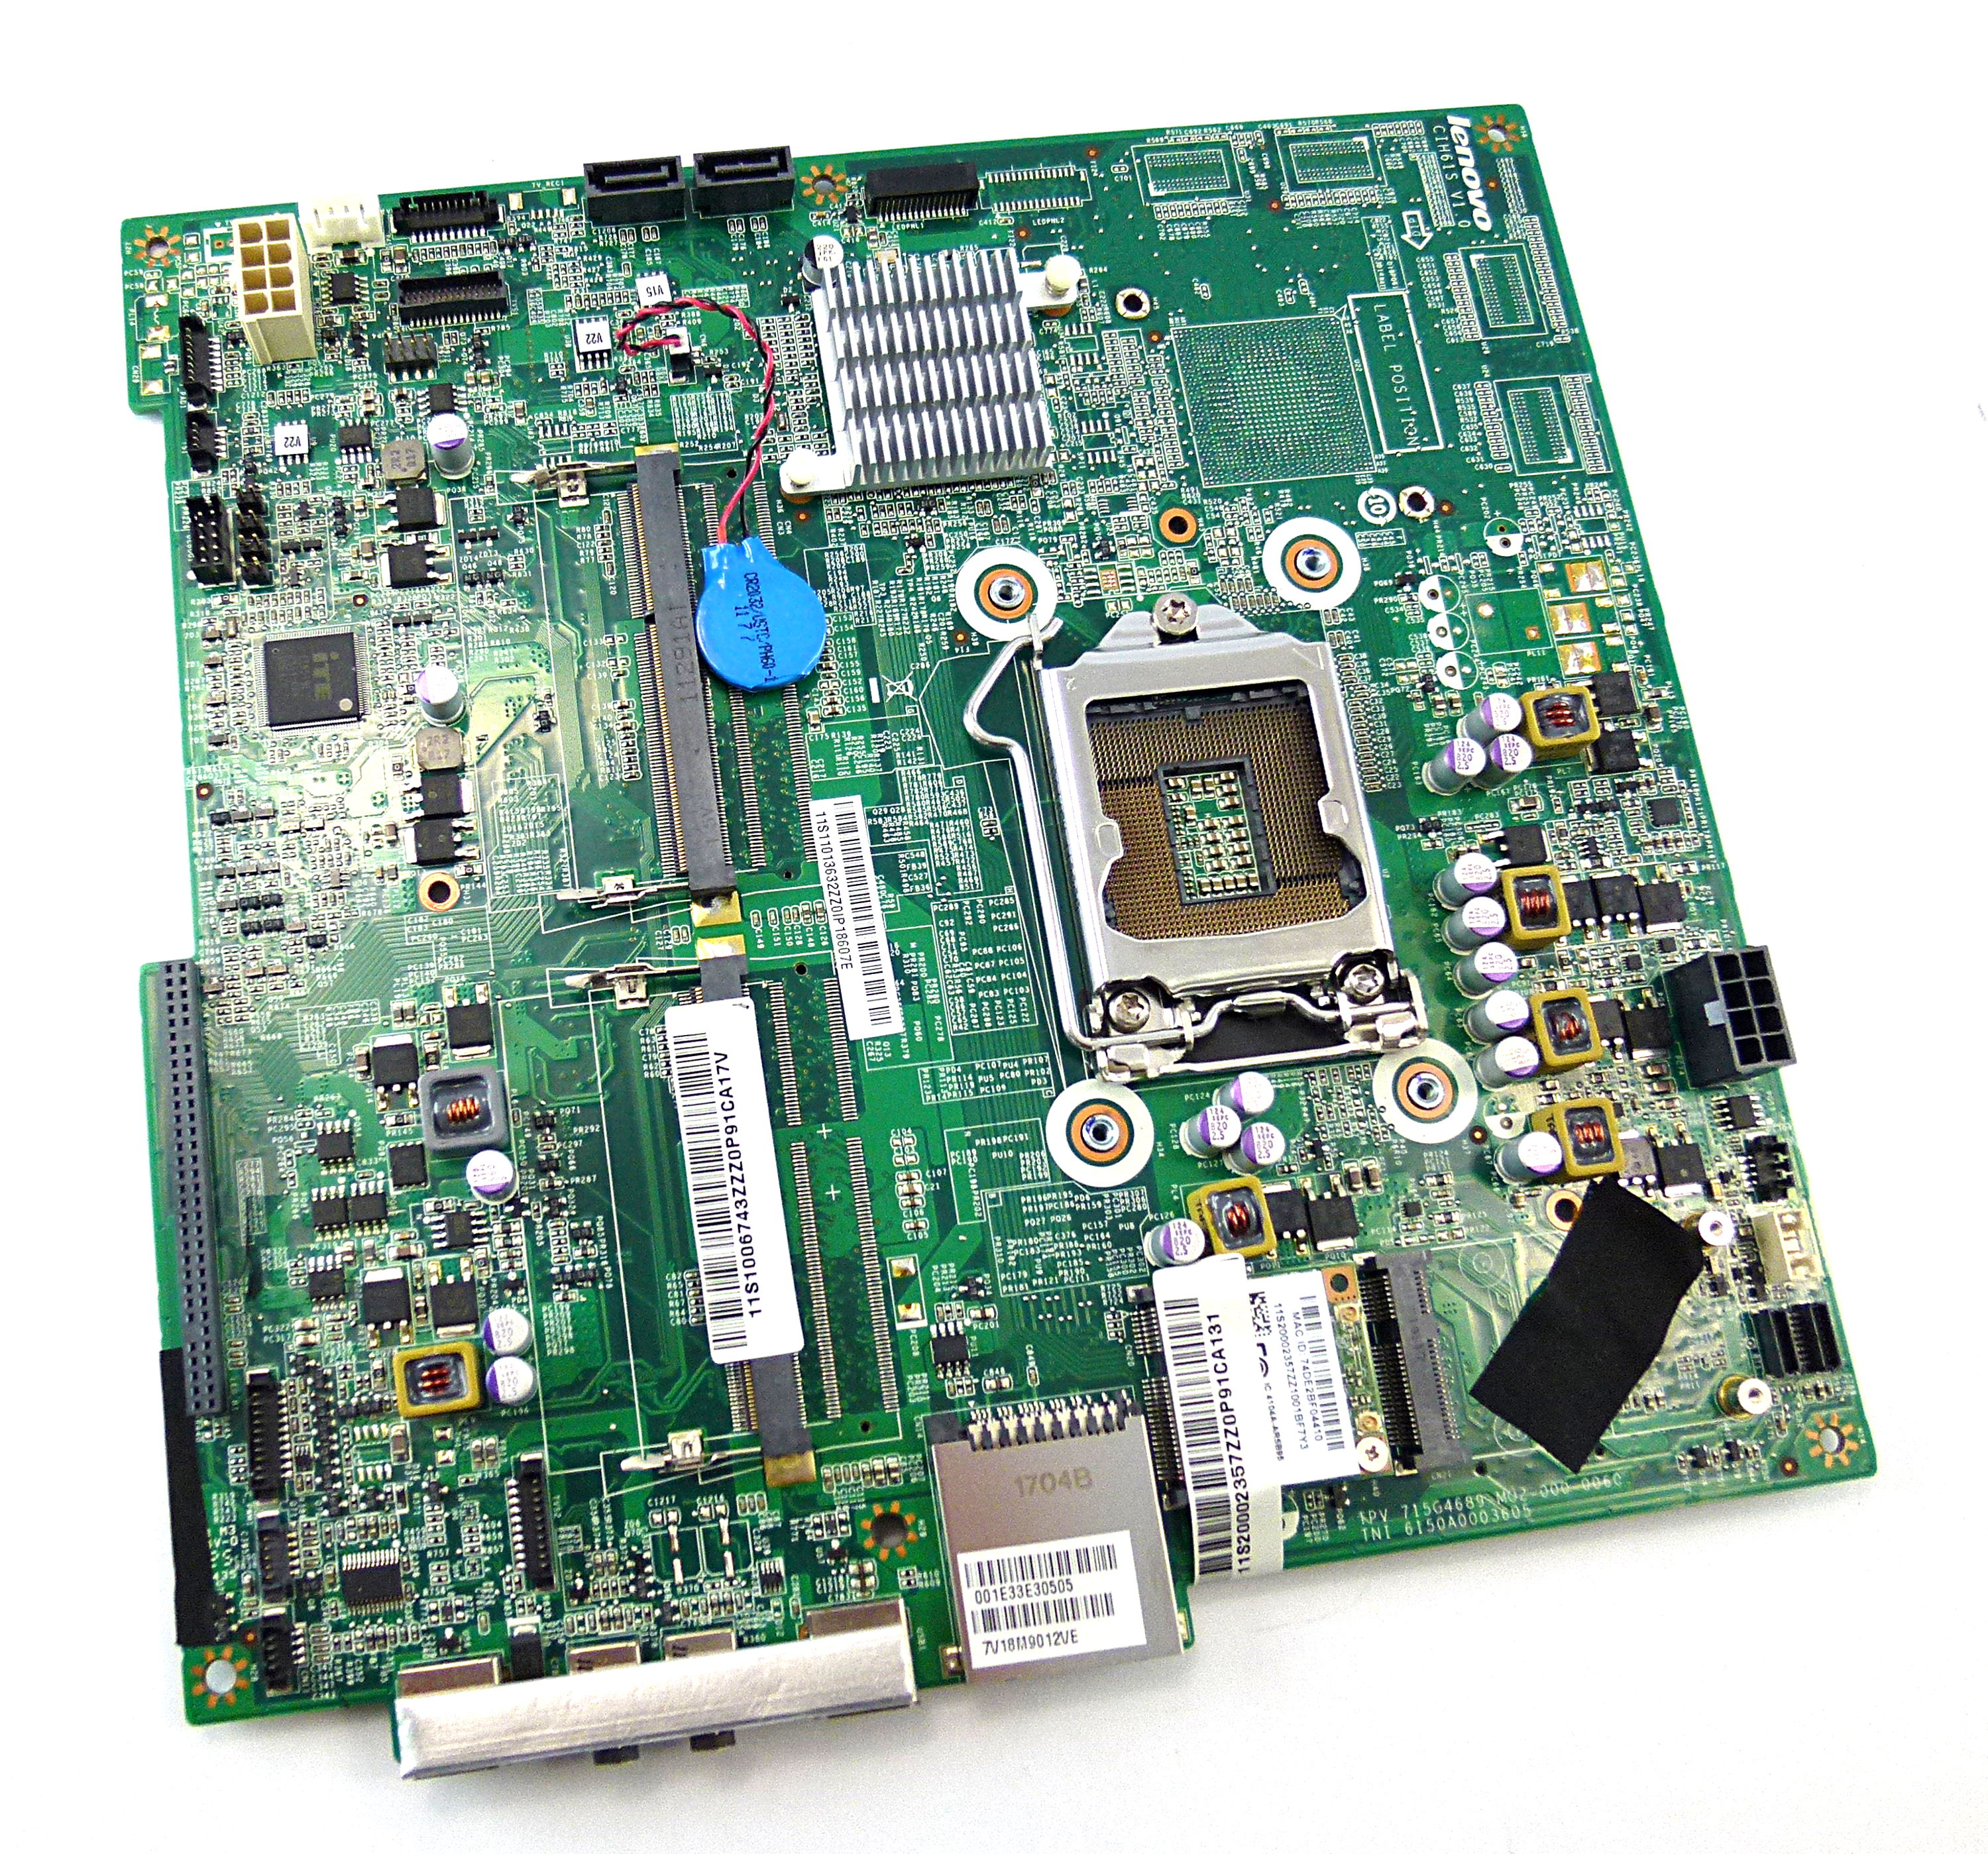 Lenovo 11S11013632 B320 All in One PC LGA1155 Motherboard 1310A2434204